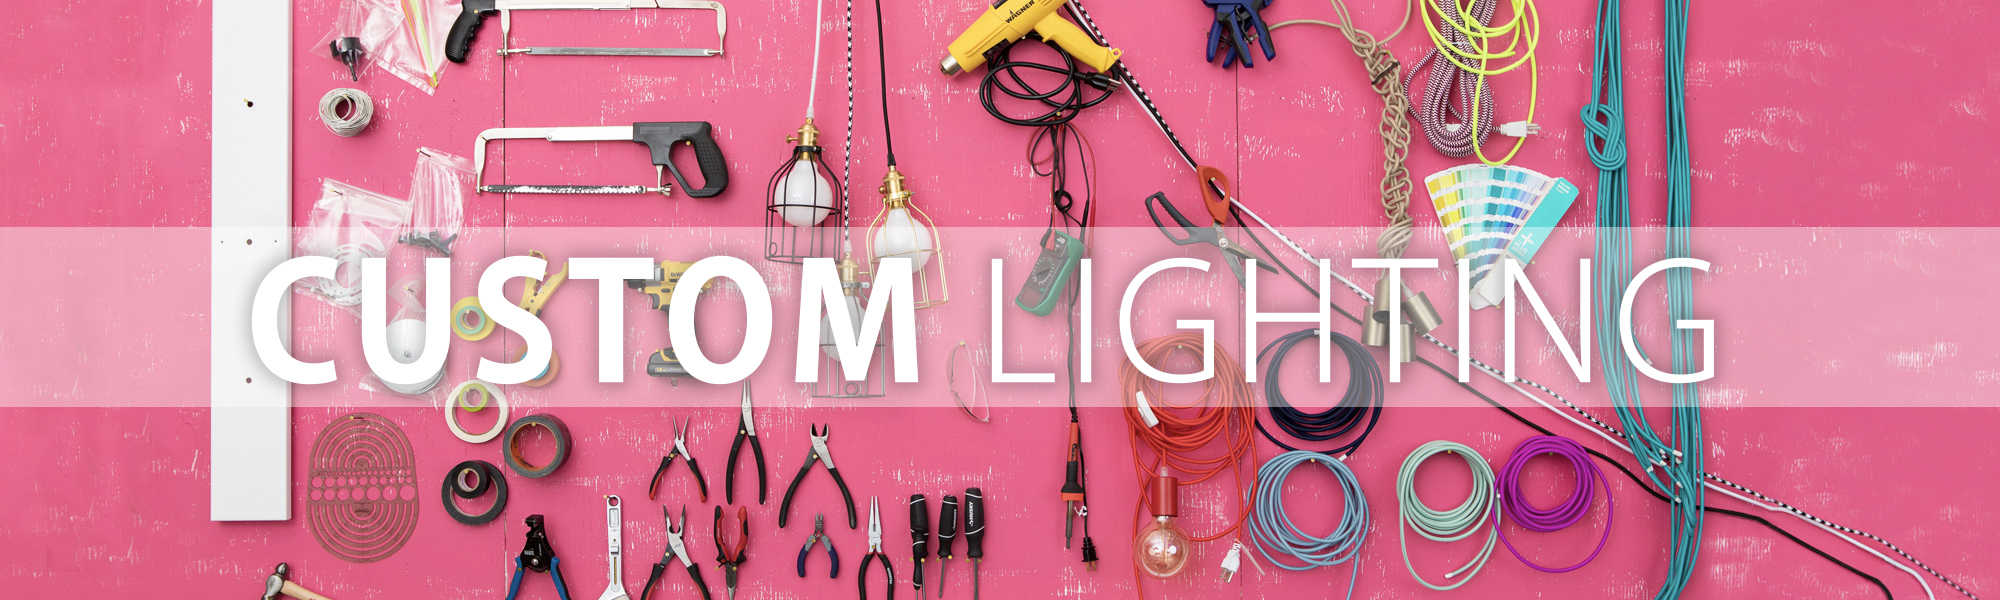 'Custom Lighting' banner with various tools and light fixtures